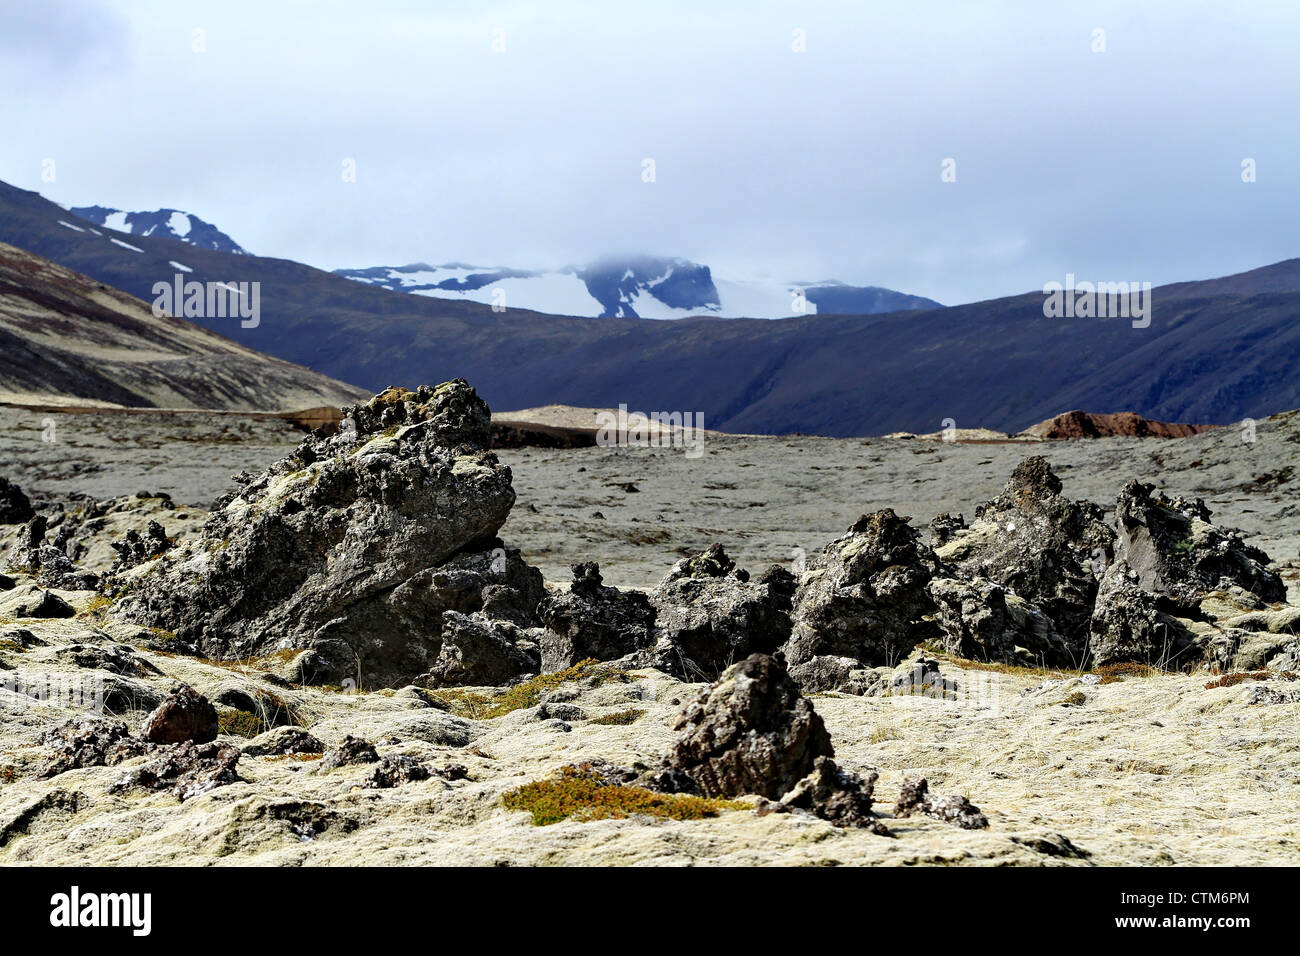 Iceland, snaefellsnes peninsula Volcanic rock formations - Stock Image